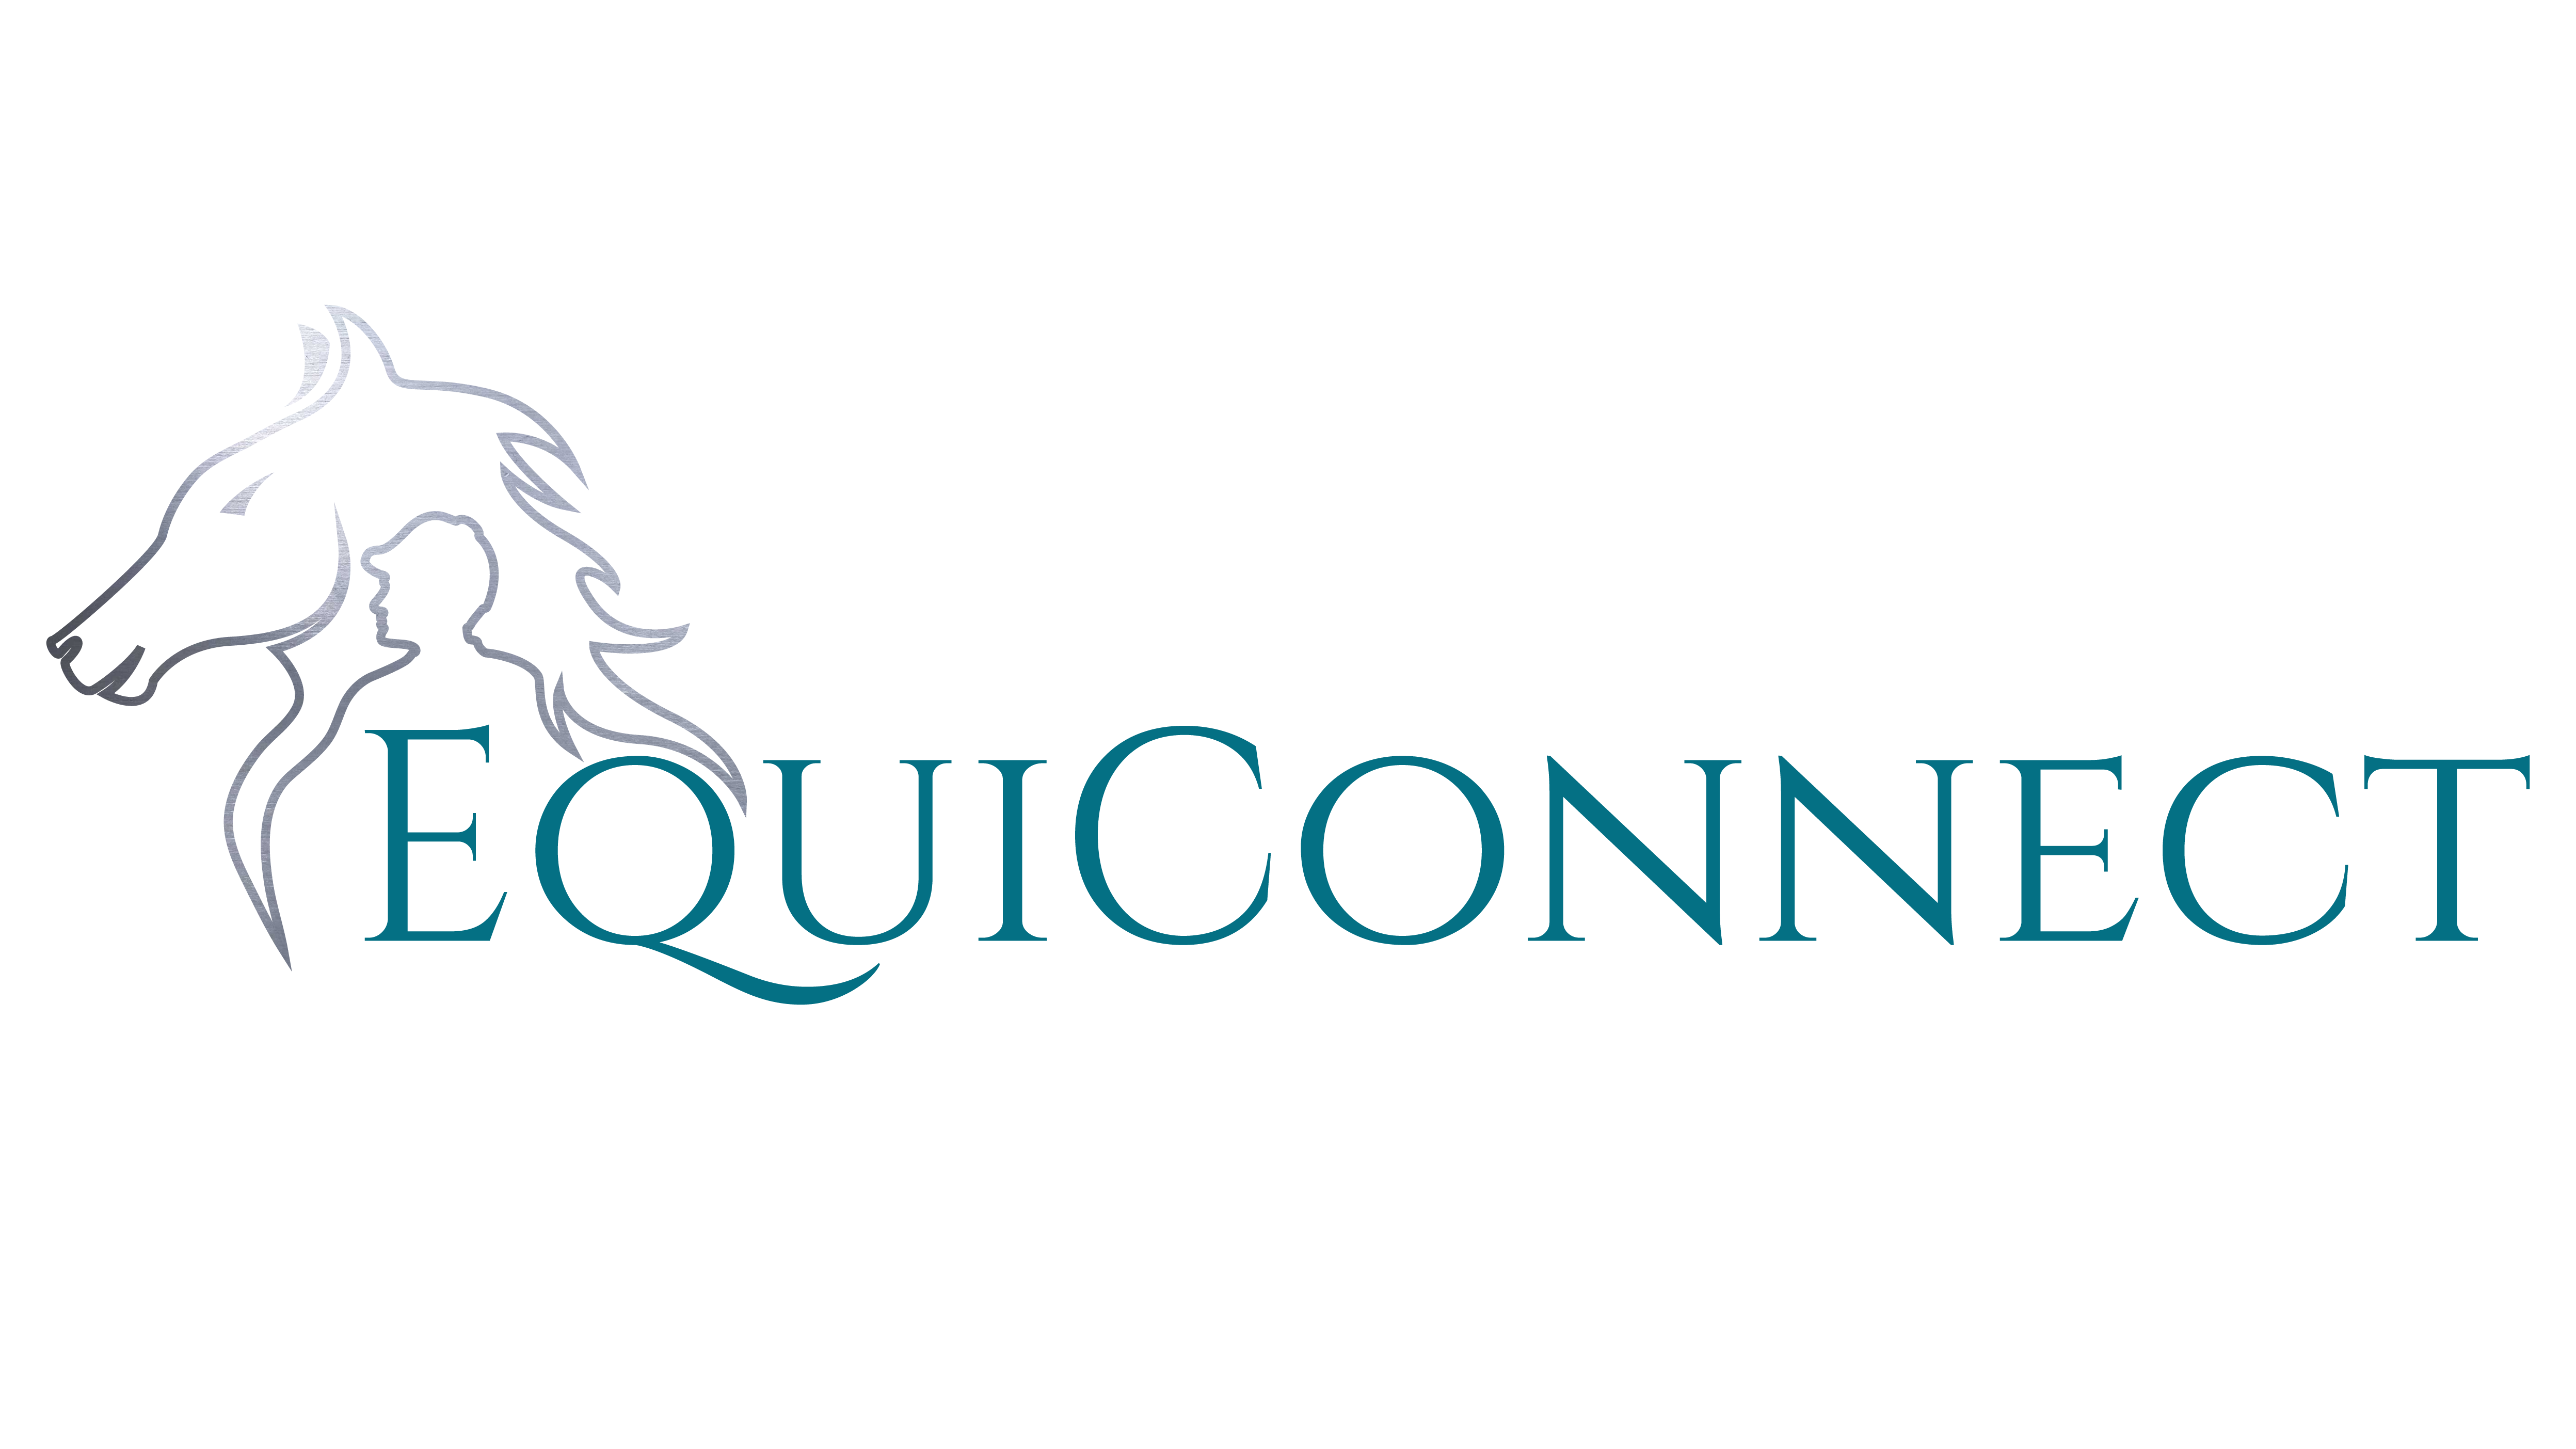 EquiConnect